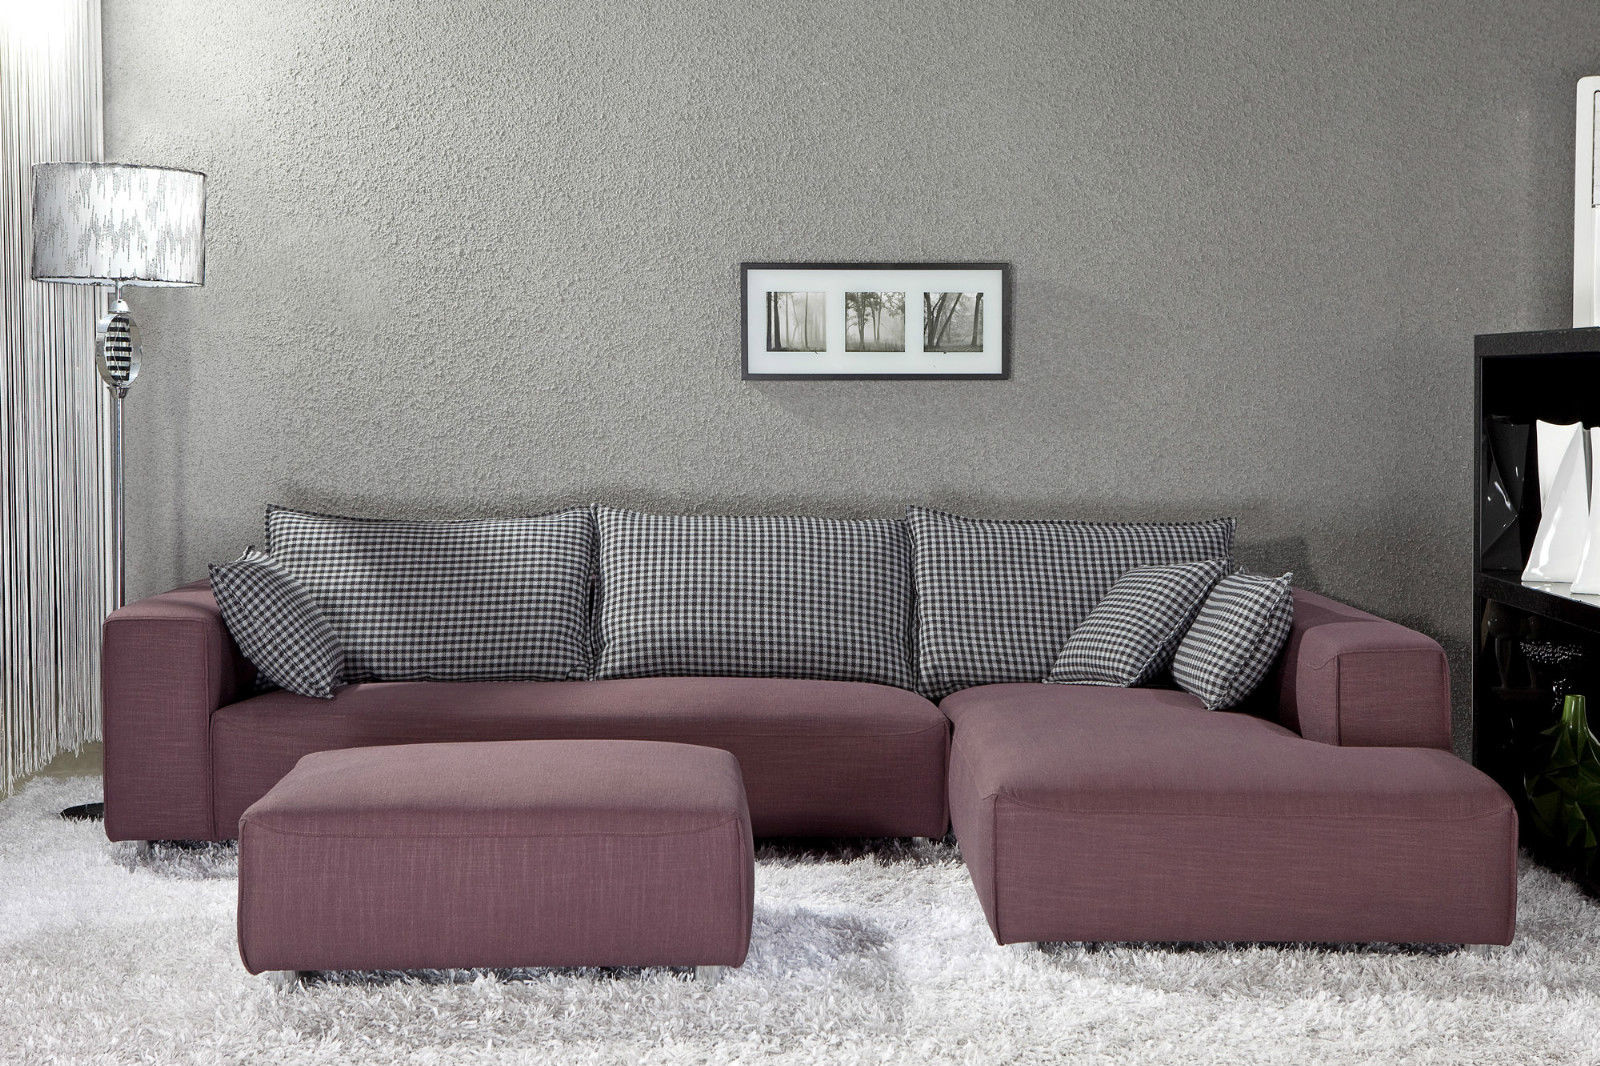 Captivating Design Sofas And Sectionals With Cushion And Laminate Flooring For Living Room Ideas